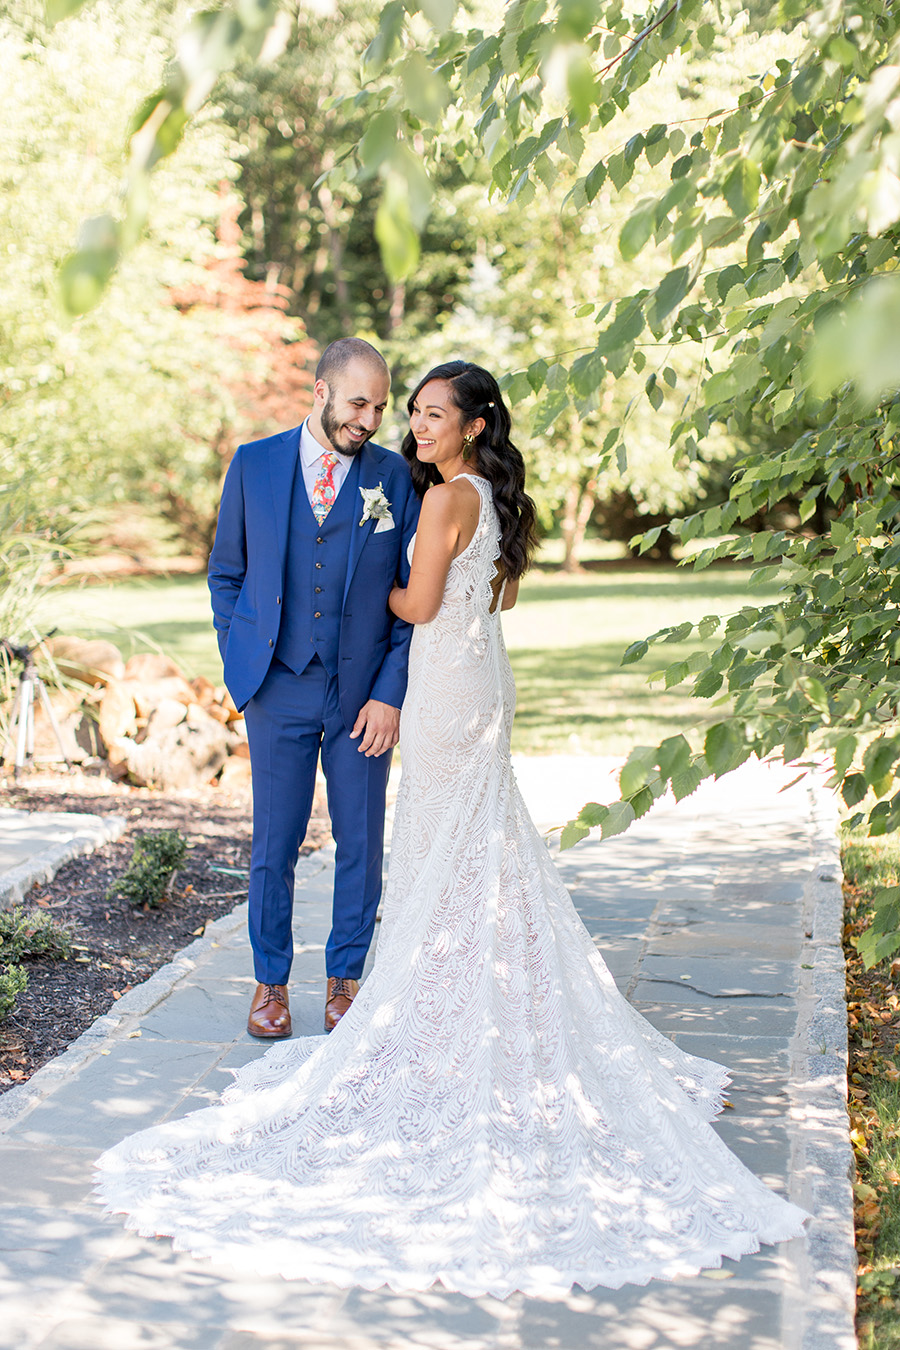 Bride's train spread out behind her as she poses with her groom